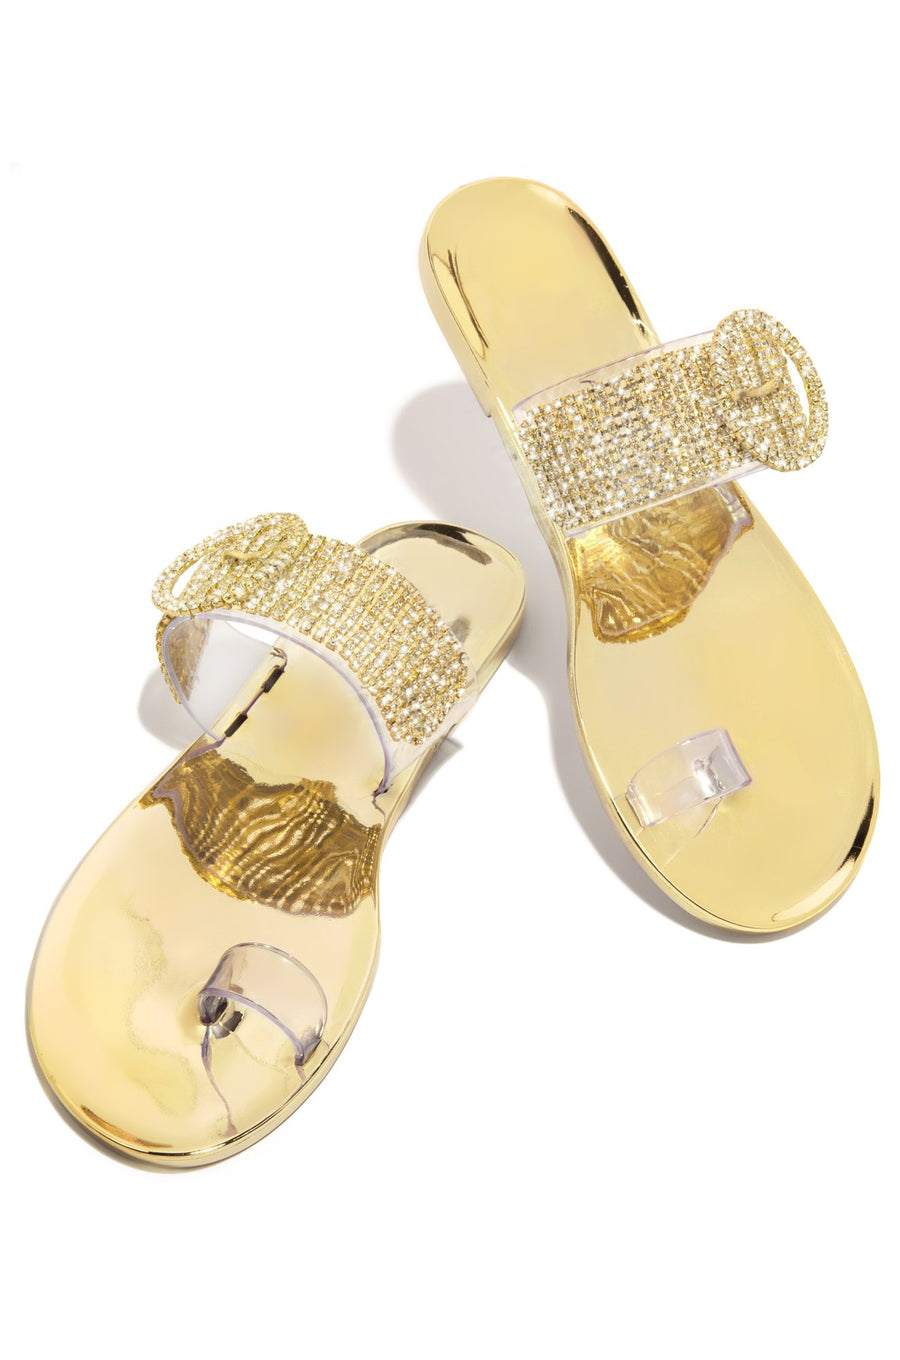 Luna Single Toe Sandals- Gold - Atlanta Shoe Studio